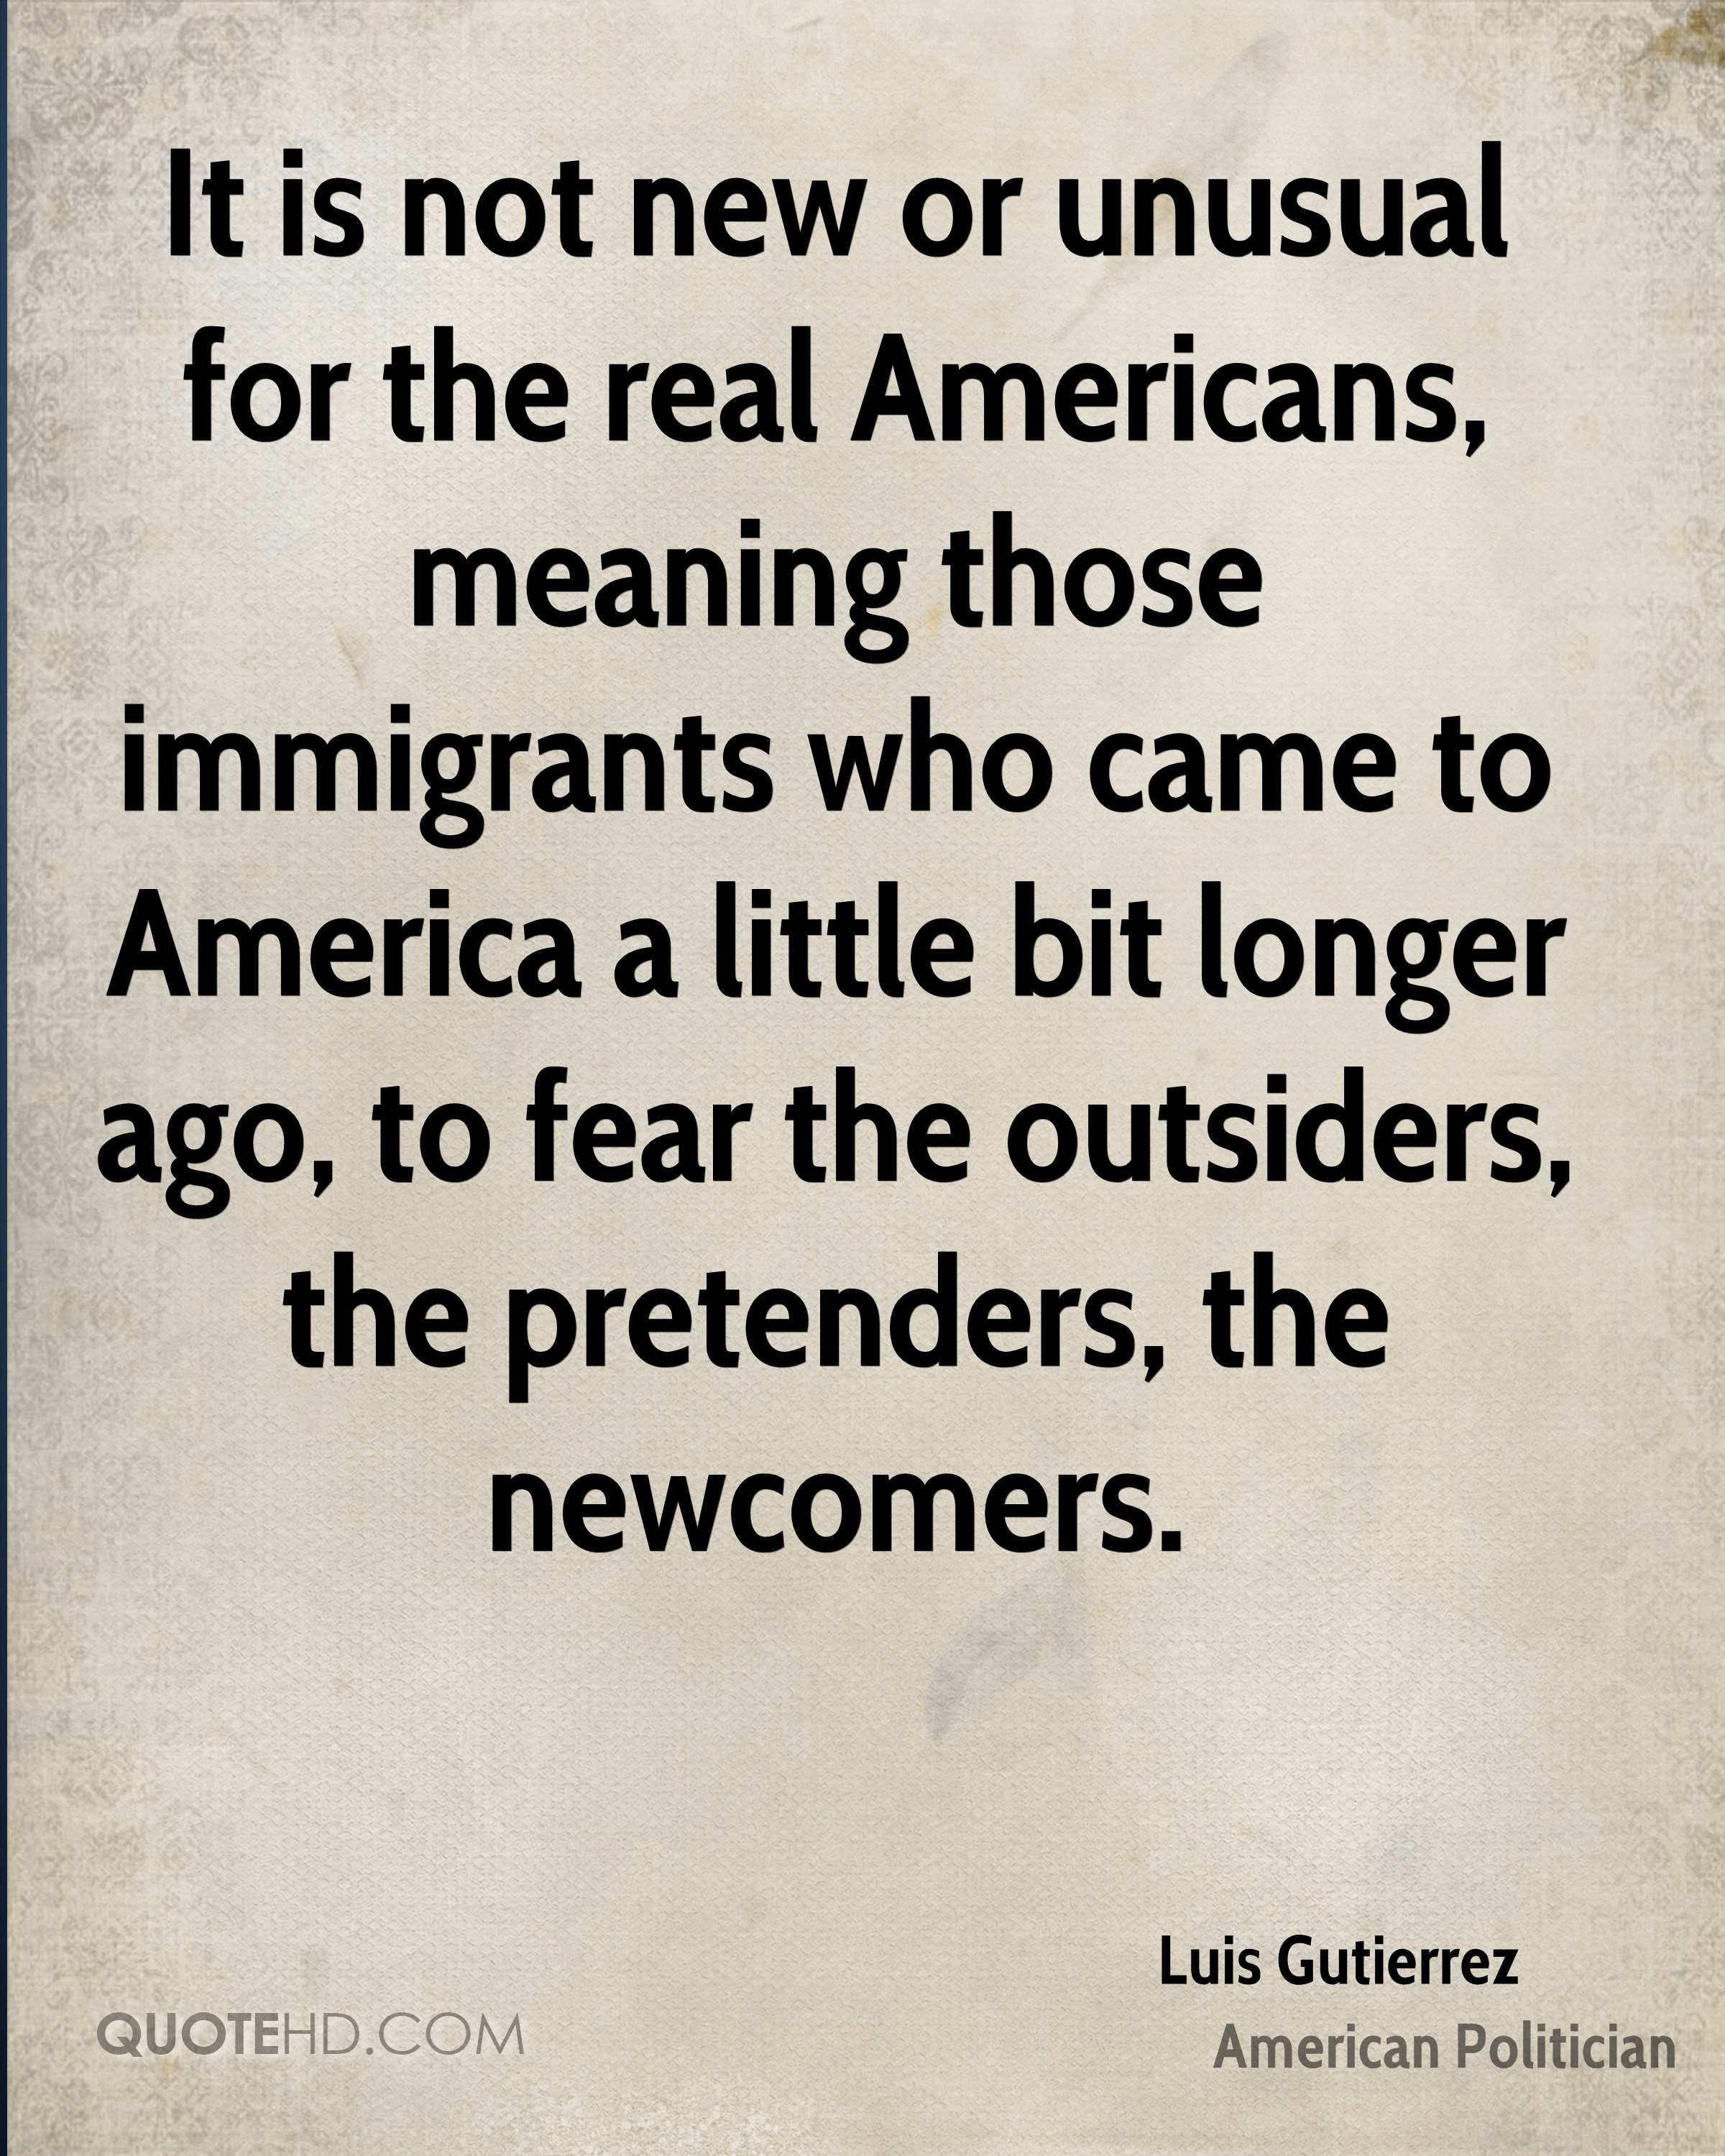 It is not new or unusual for the real Americans, meaning those immigrants who came to America a little bit longer ago, to fear the outsiders, the pretenders, the newcomers.